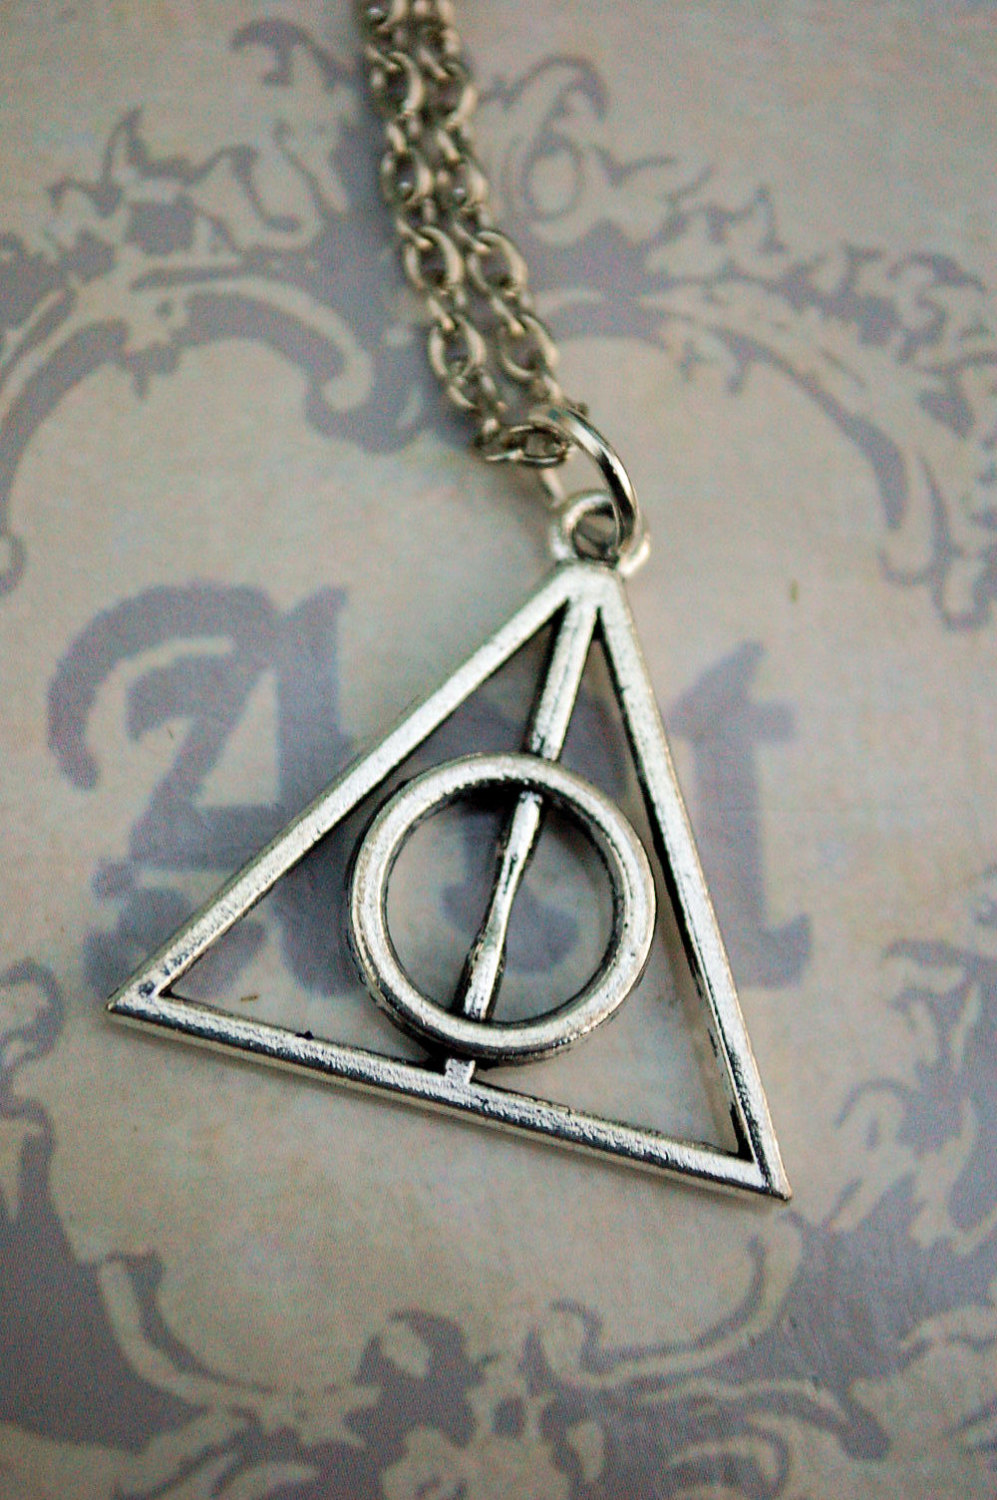 Silver tone harry potter deathly hallows necklace